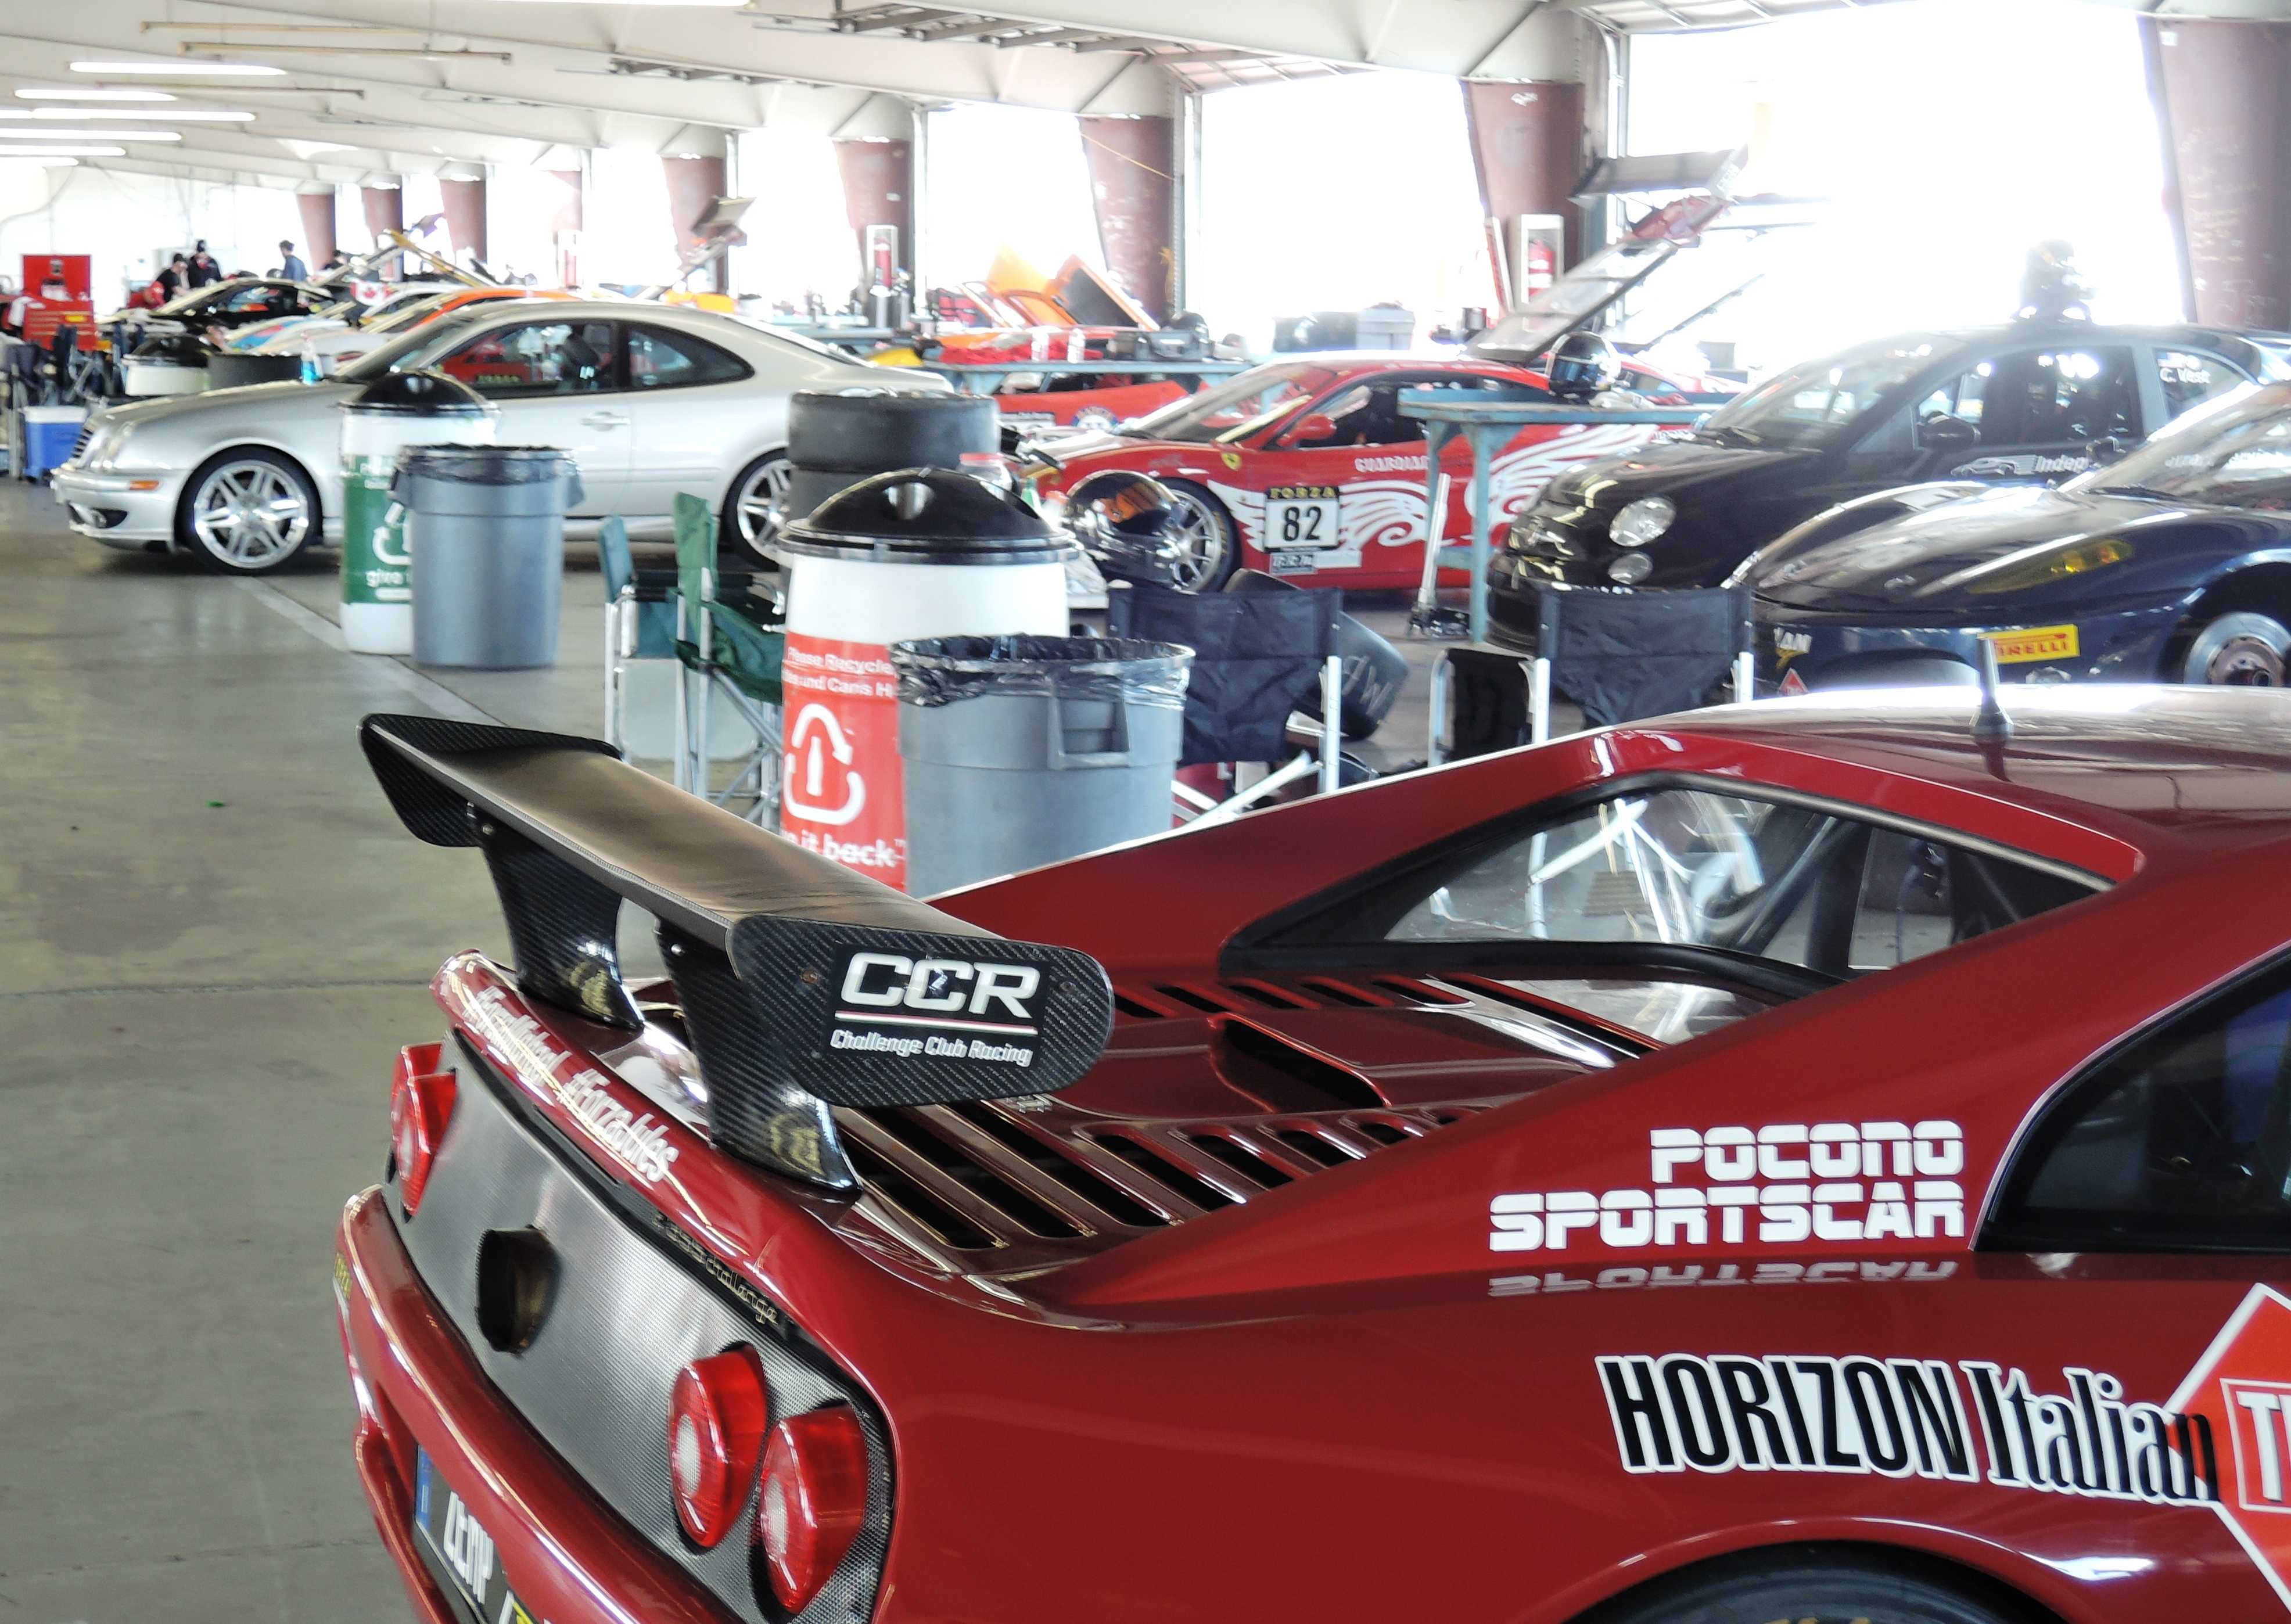 ferrari challenge cars in the garages at ferrari club - watkins glen